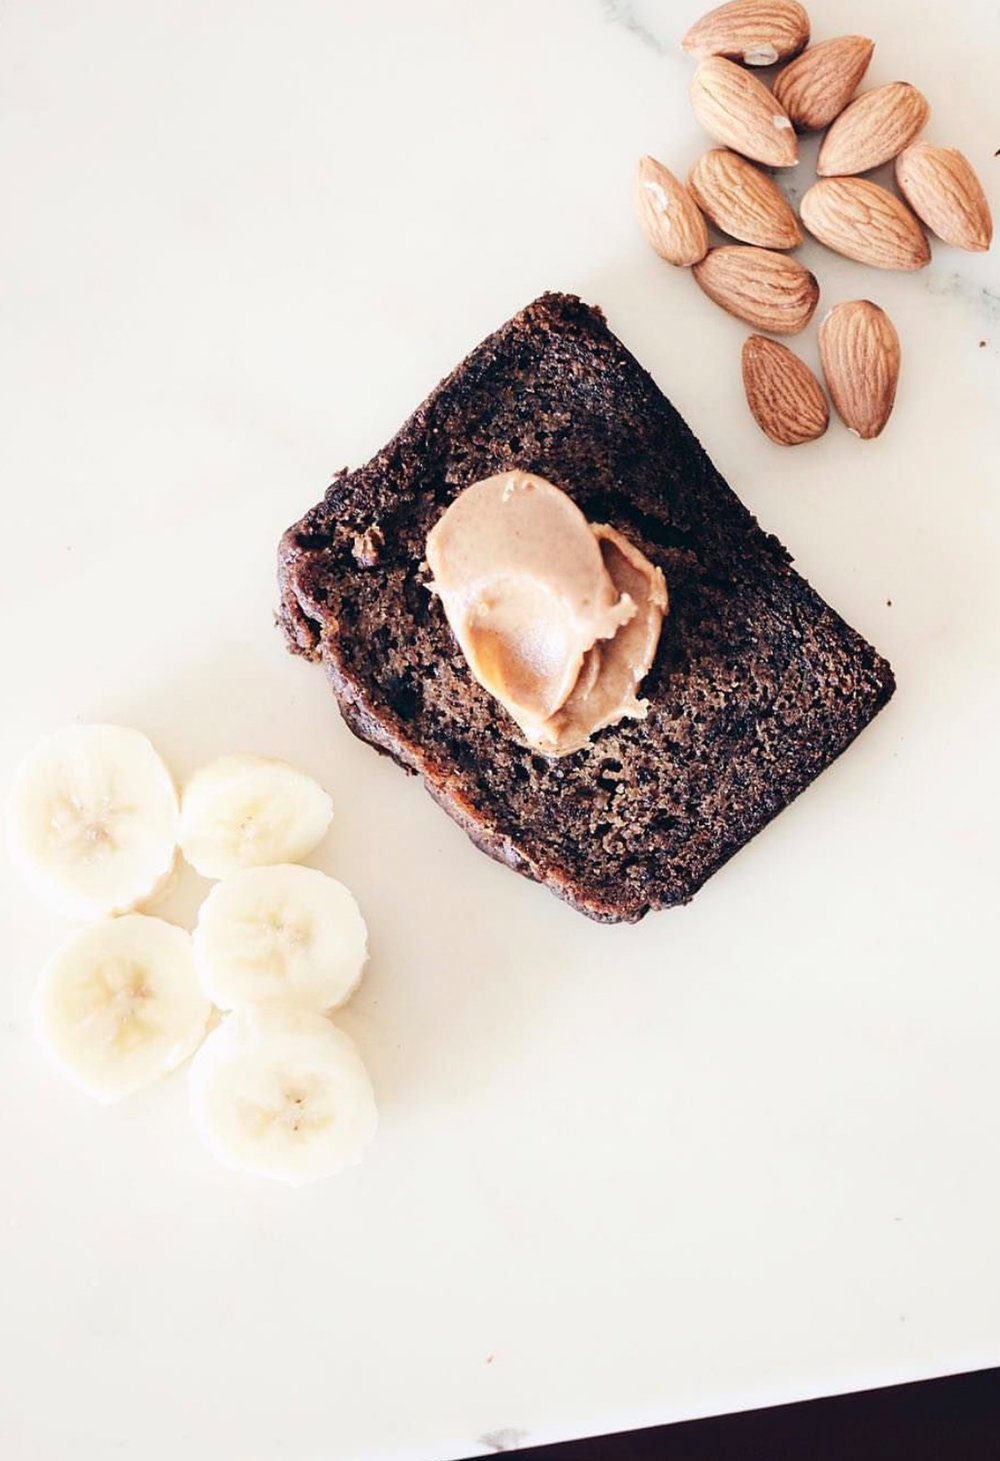 banana bread with peanut spread